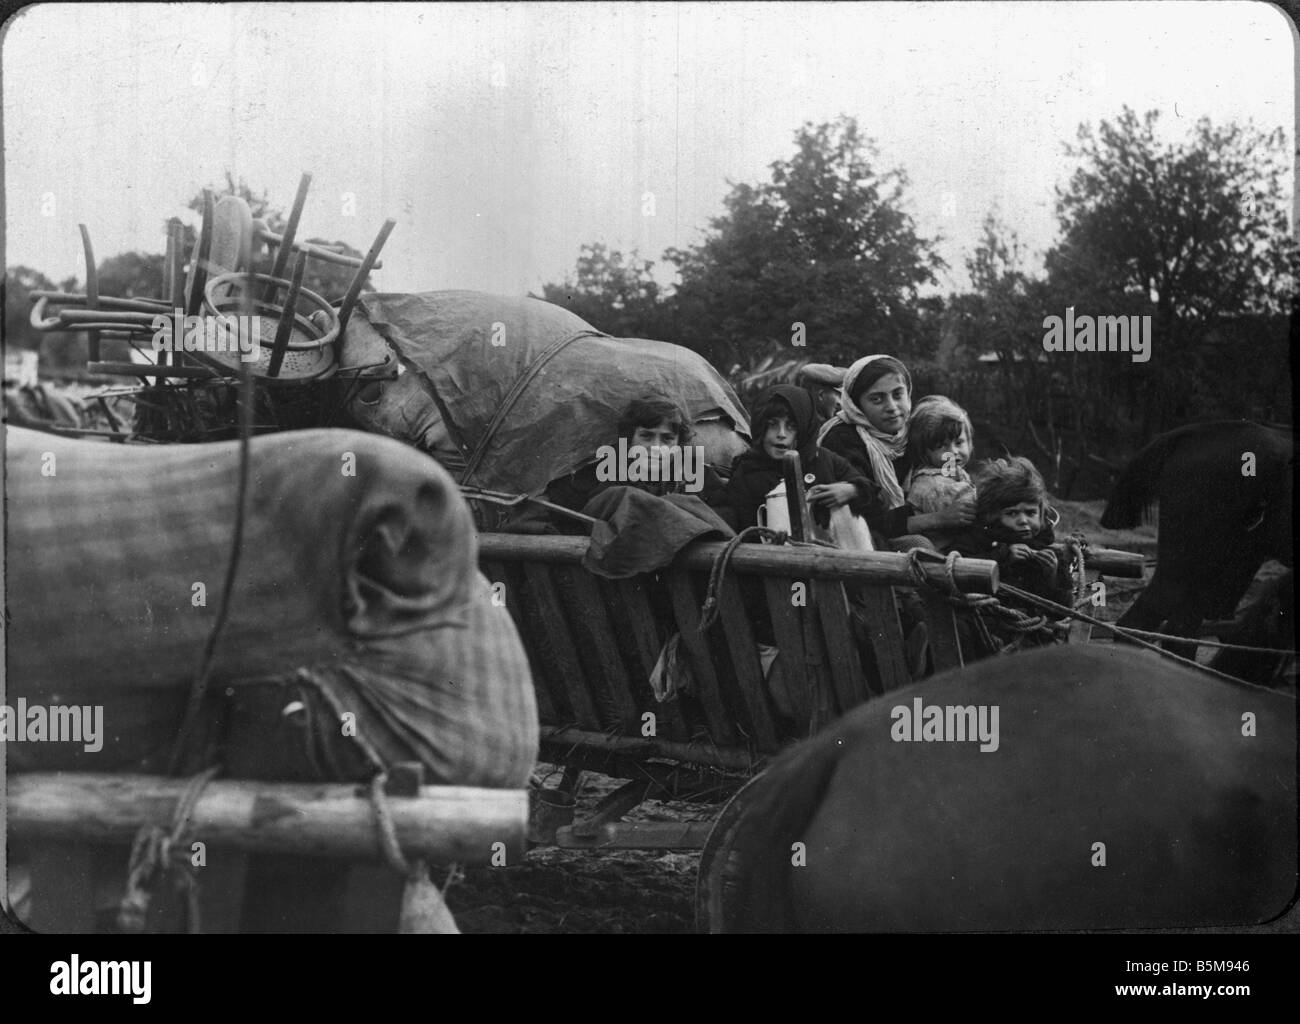 2 G55 O1 1916 20 E Refugee family Lithuania WWI c 1916 History World War I Eastern Front A refugee family on a cart - Stock Image